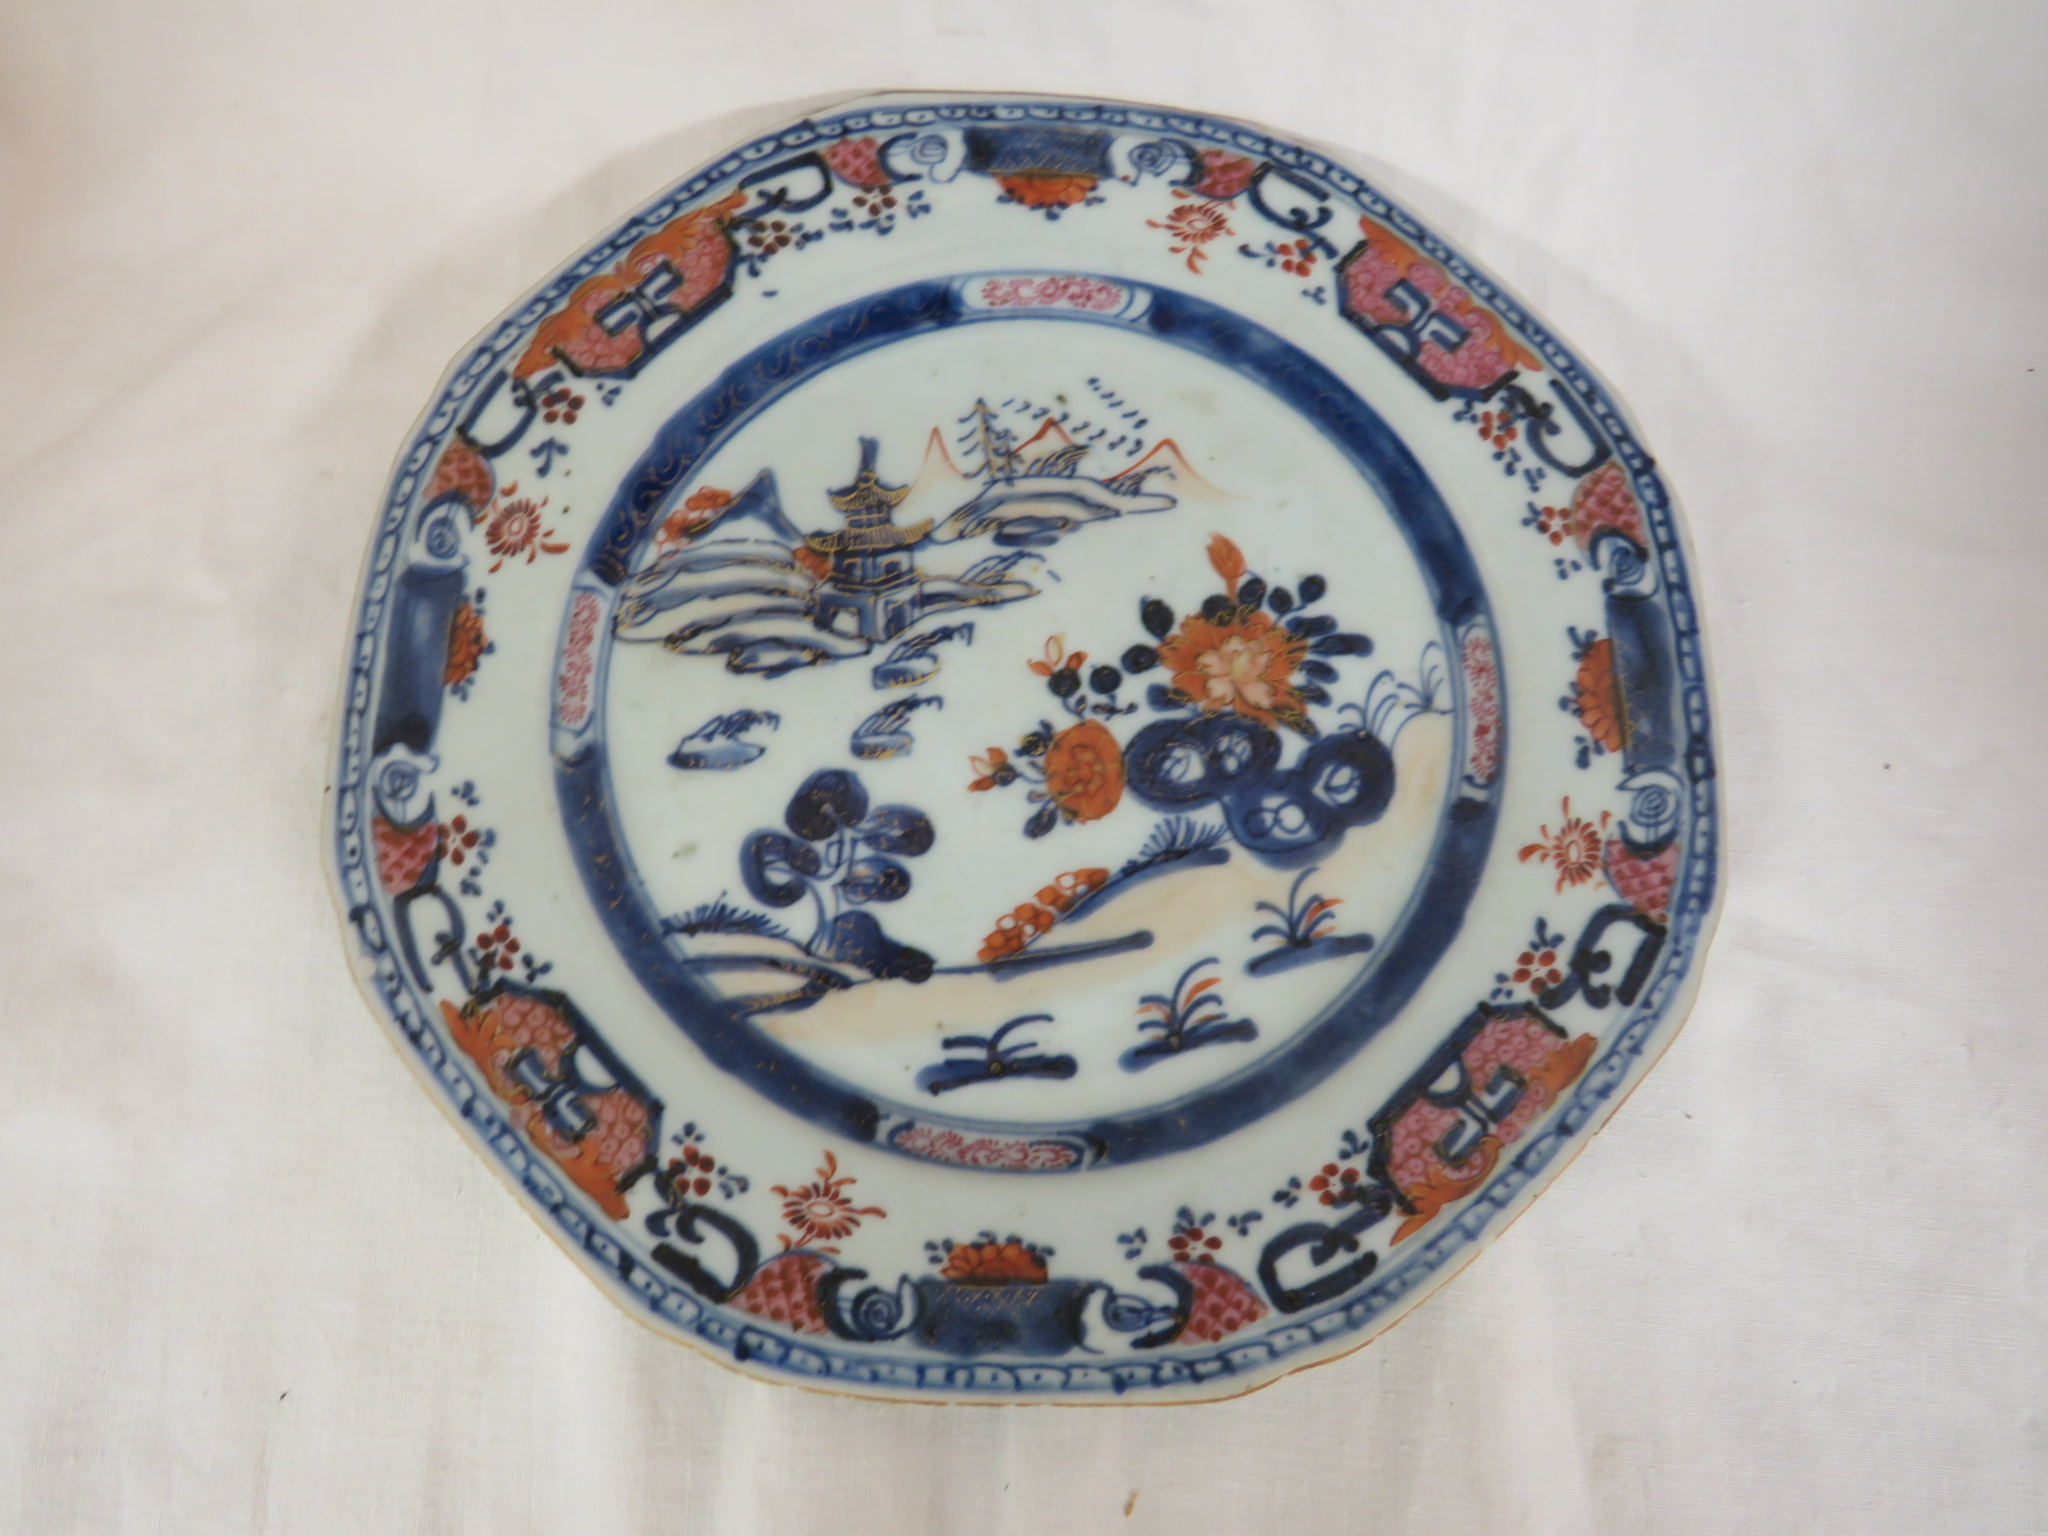 Lot 106 - Two Chinese porcelain plates - the first with a wavy rim and extensive decoration in polychrome